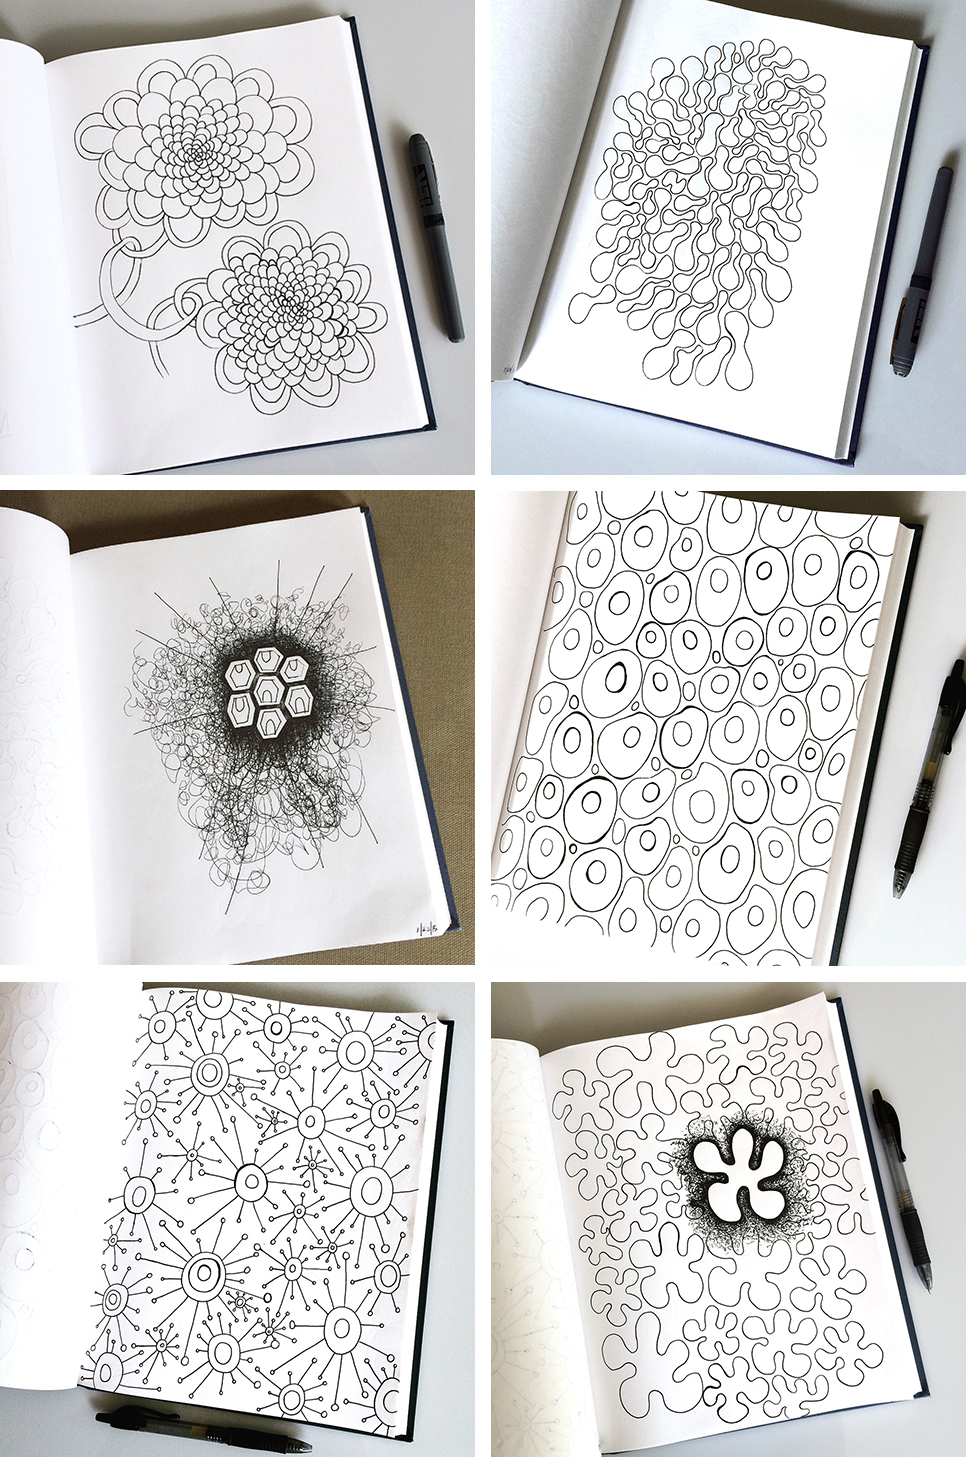 Sketchbook Pattern Drawings: Day 1-6